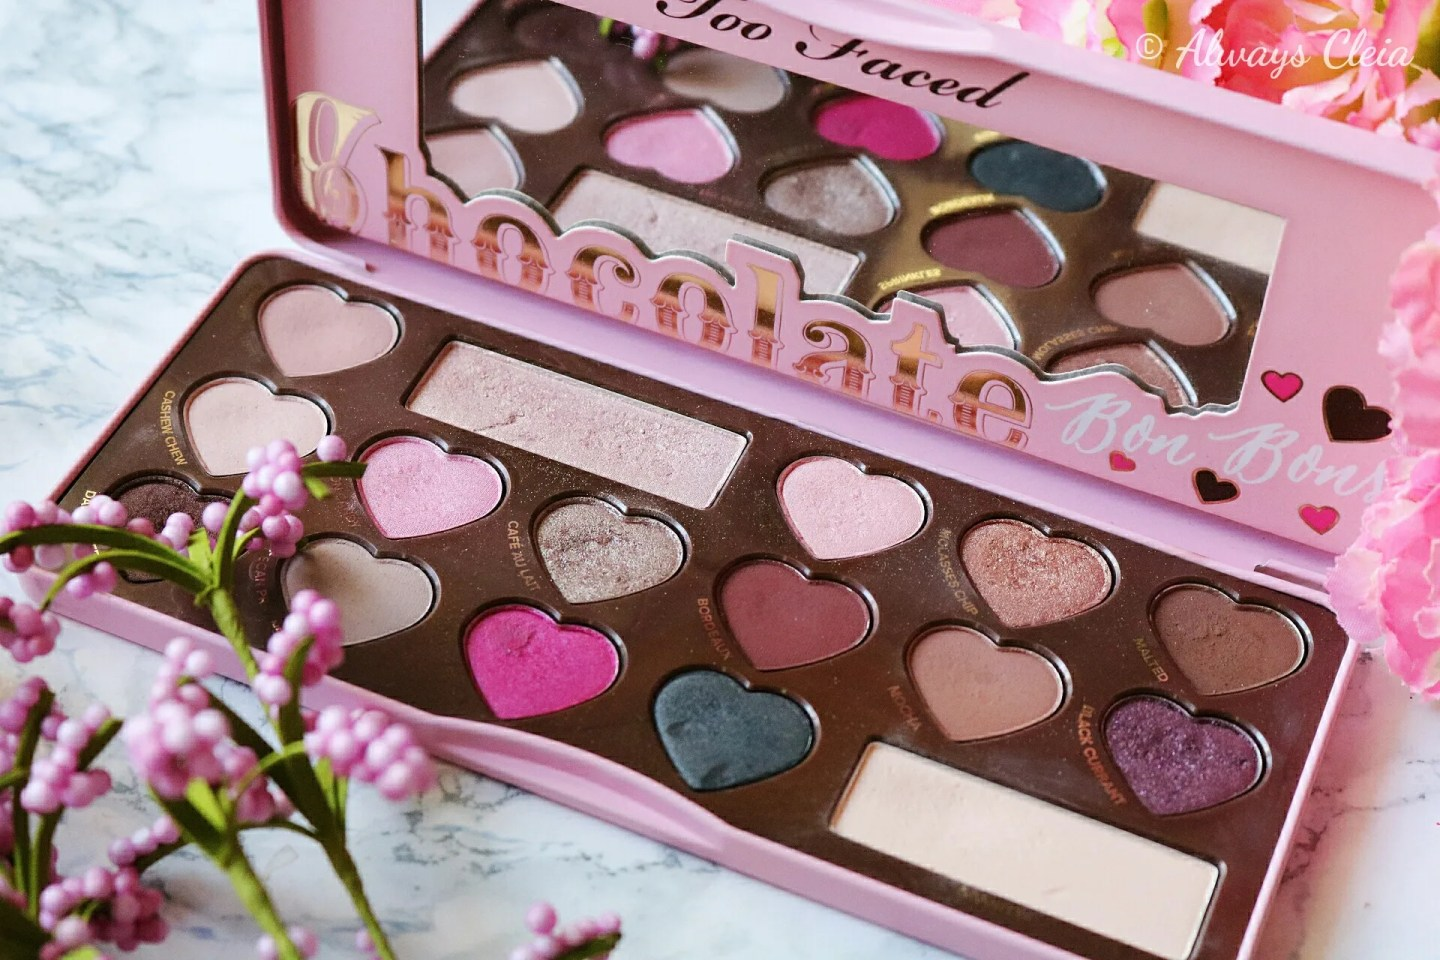 Too Faced Chocolate Bon Bons Palette | If I could Only Keep One Makeup Tag